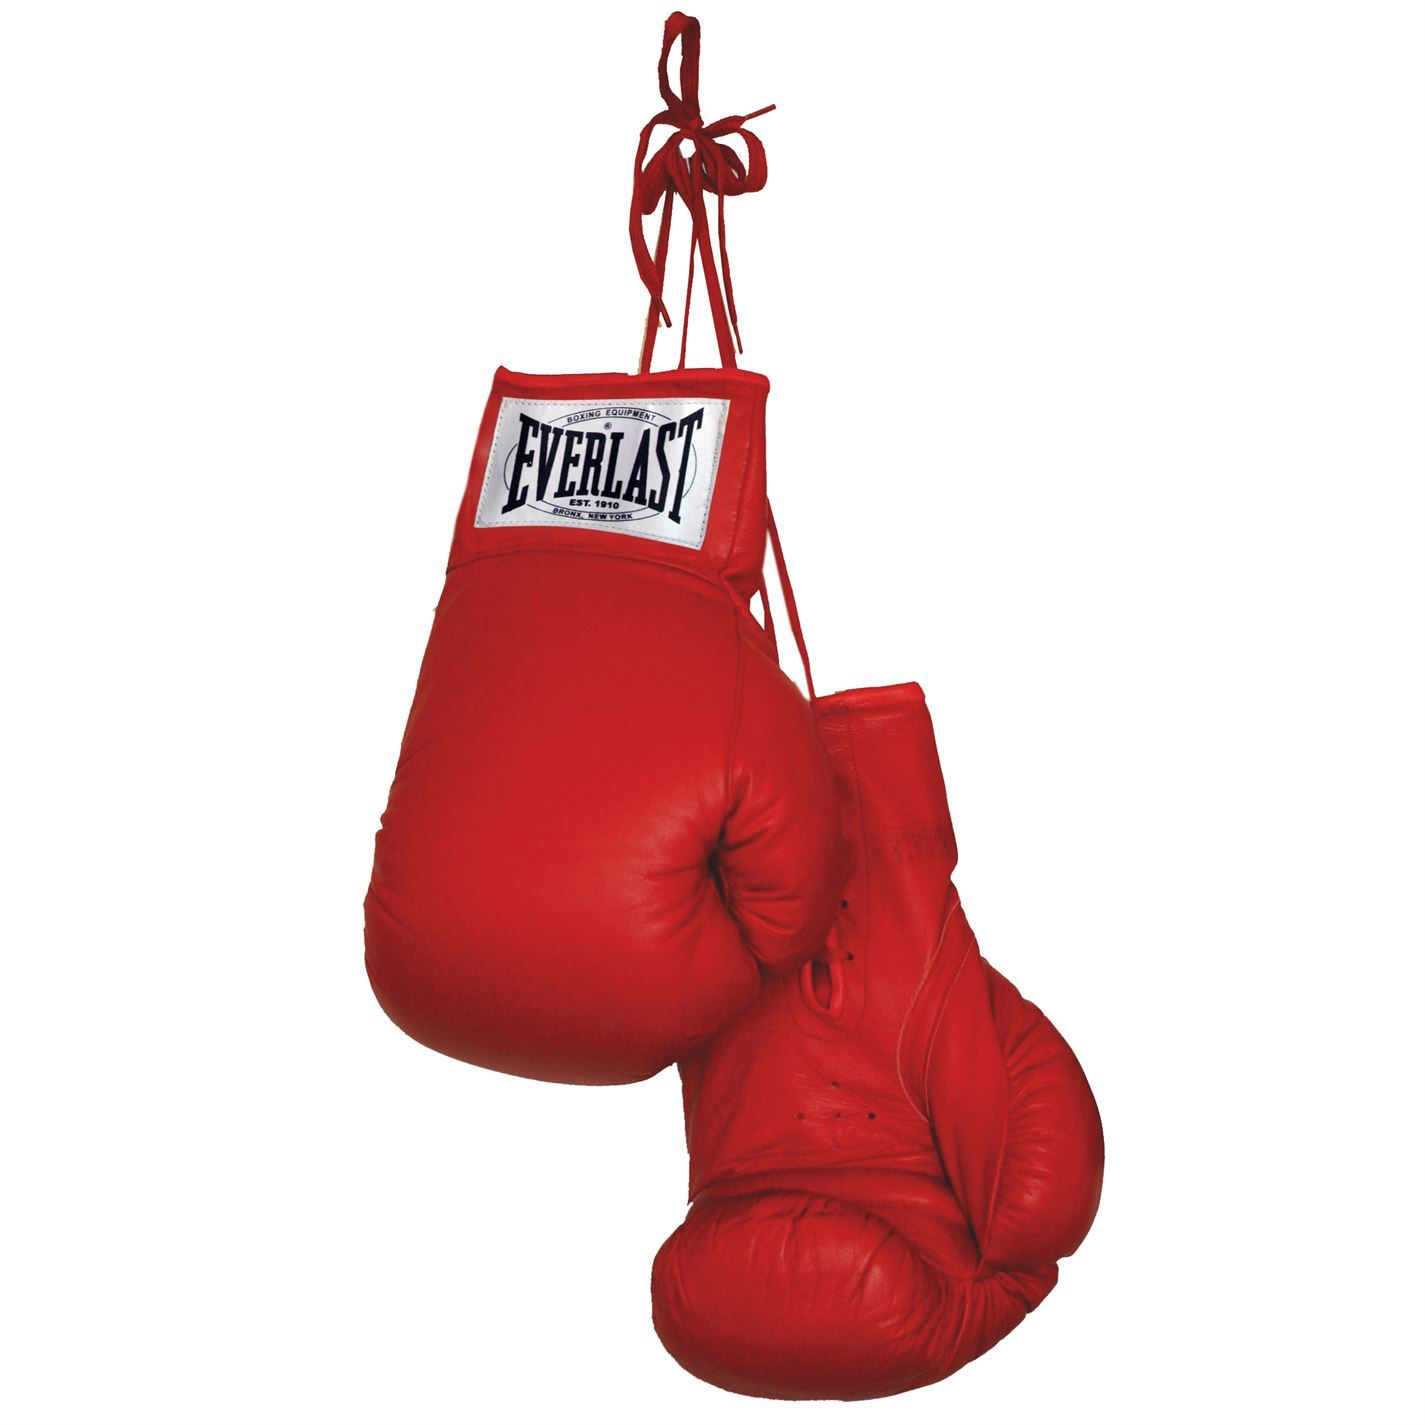 Everlast Fitness Gloves Mens: Everlast Autograph Boxing Gloves Red Display Gloves Only